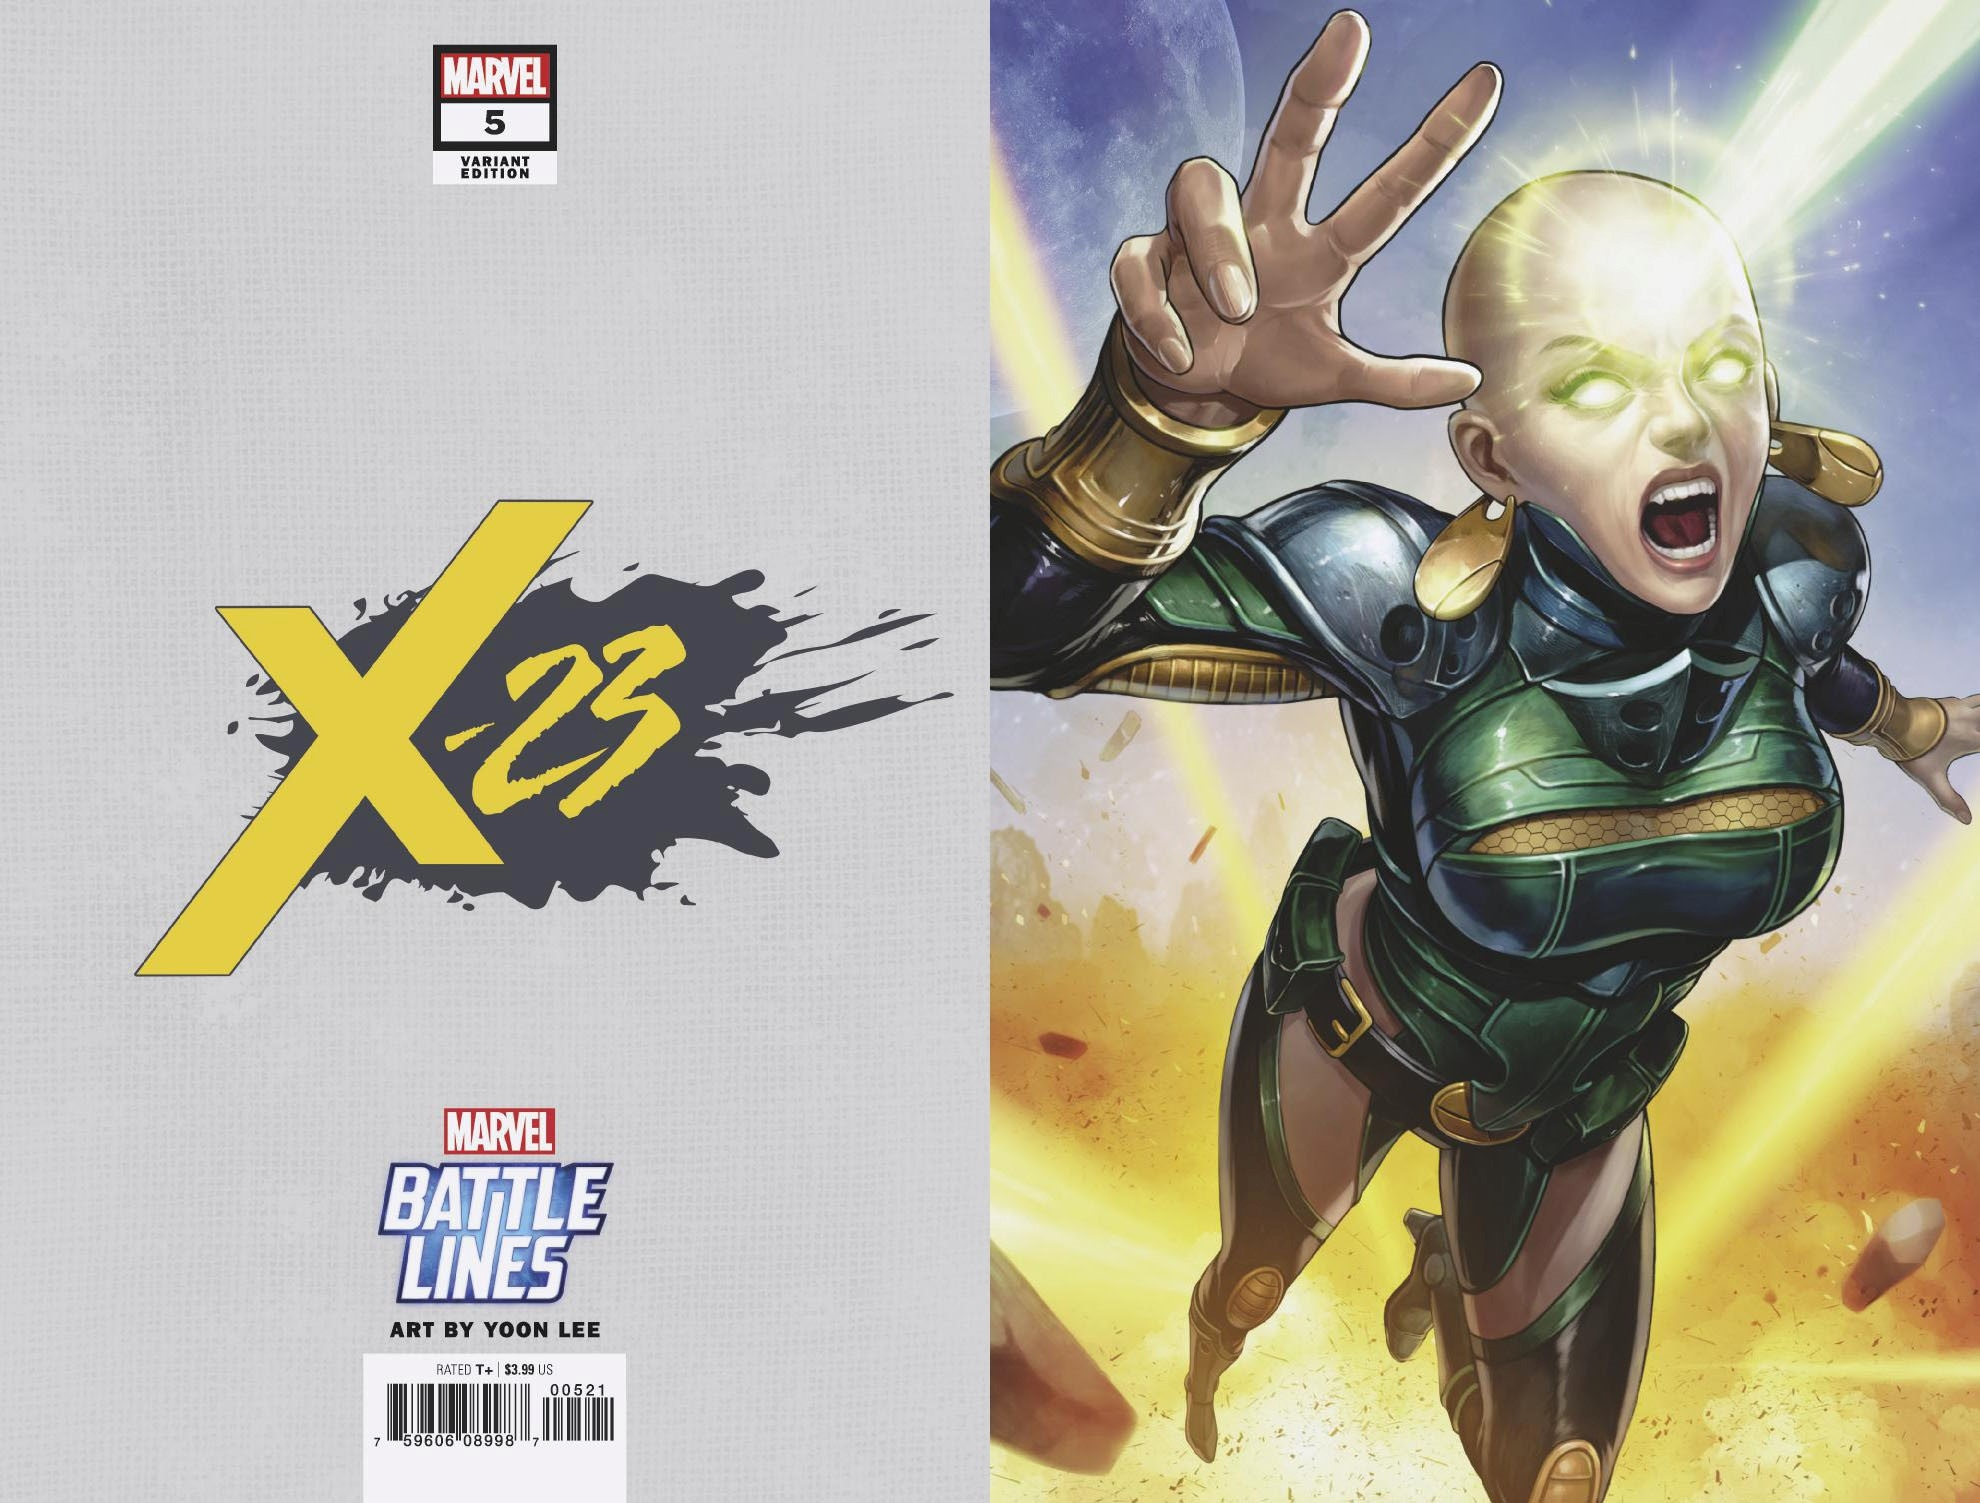 X-23 #5 YOON LEE MARVEL BATTLE LINES VAR